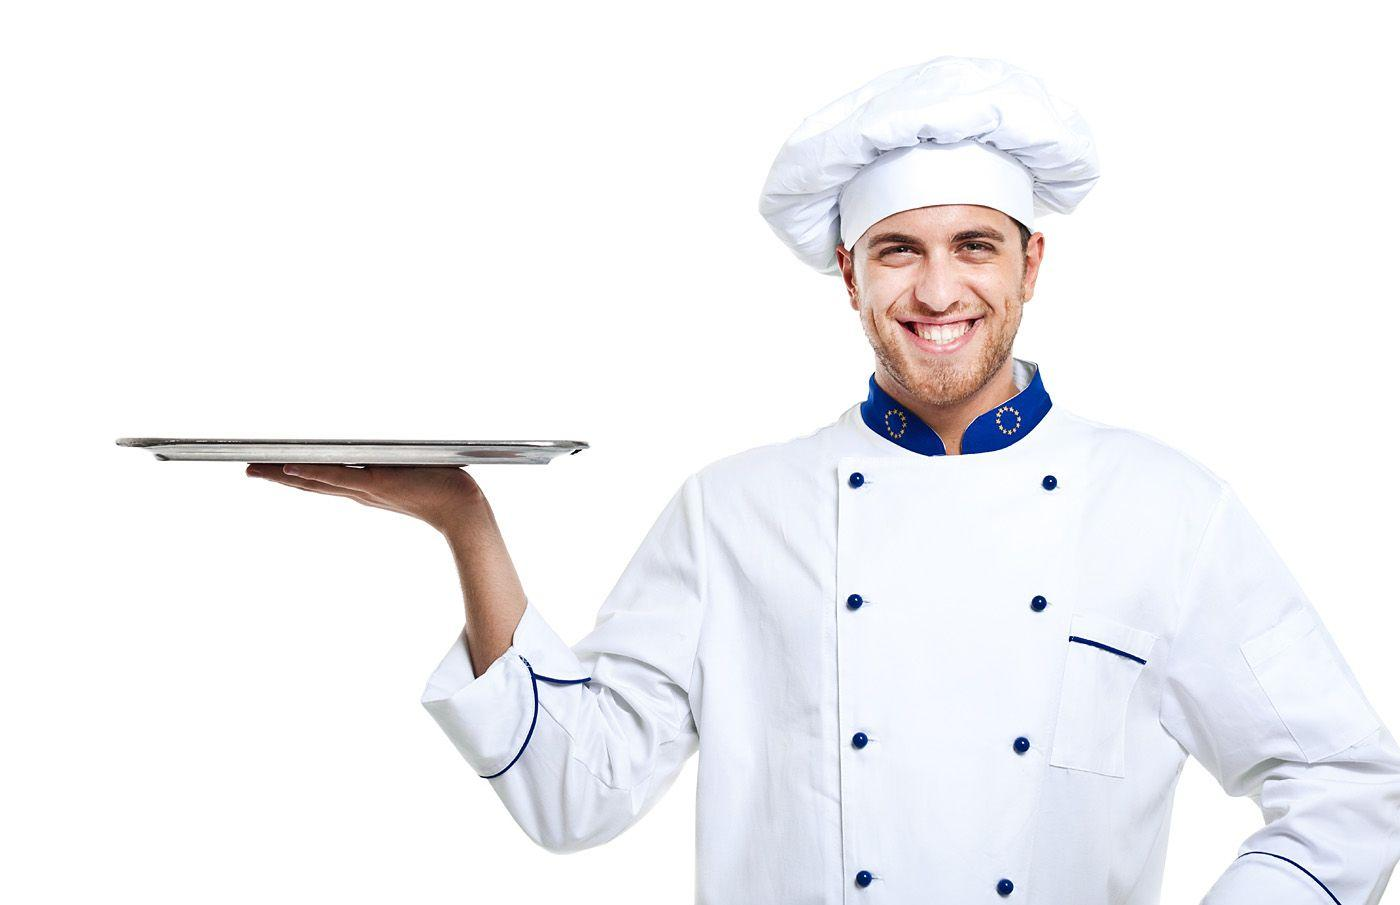 Chef Wallpapers - Wallpaper Cave for Chef Wallpaper Hd  45gtk